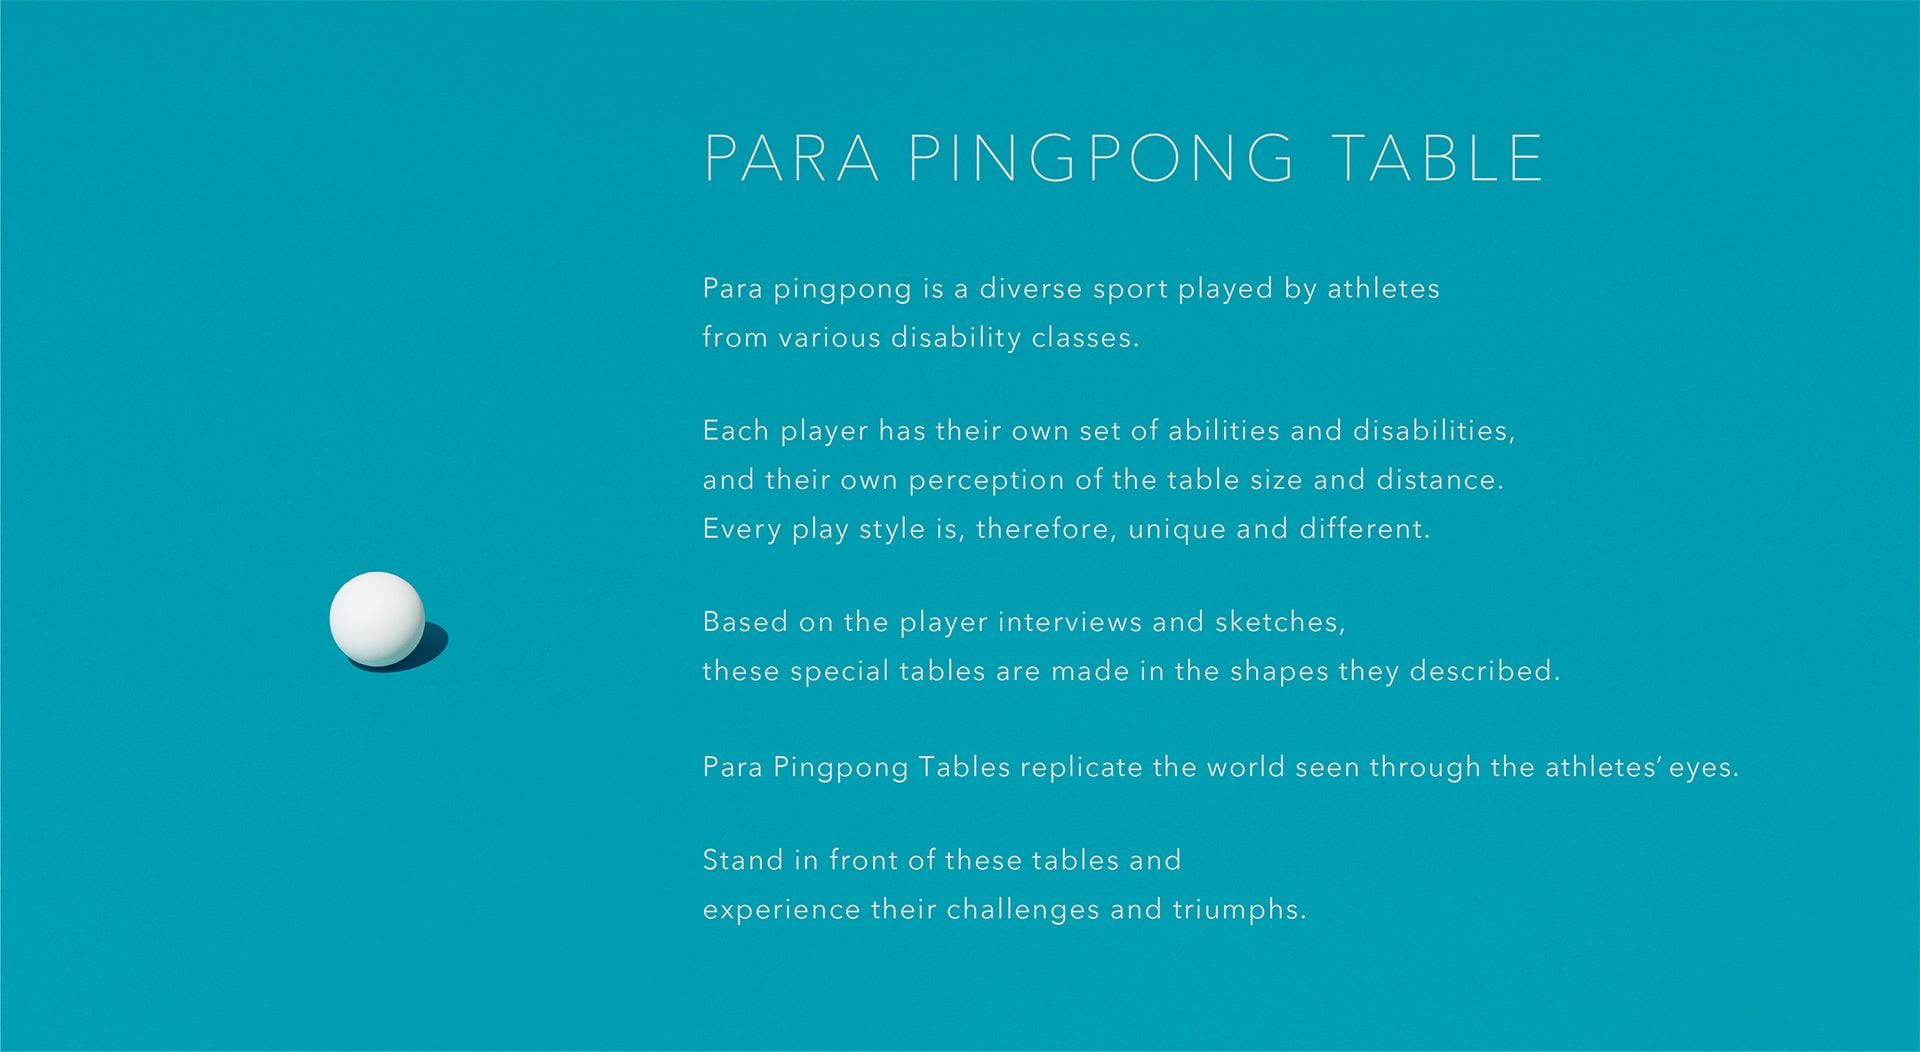 Para pingpong is a diverse sport played by athletes from various disability classes. Each player has their own set of abilities and disabilities, and their own perception of the table size and distance. Every play style is, therefore, unique and different. Based on the player interviews and sketches, these special tables are made in the shapes they described. Para Pingpong Tables replicate the world seen through the athletes'eyes. Stand in front of these tables and experience their challenges and triumphs.